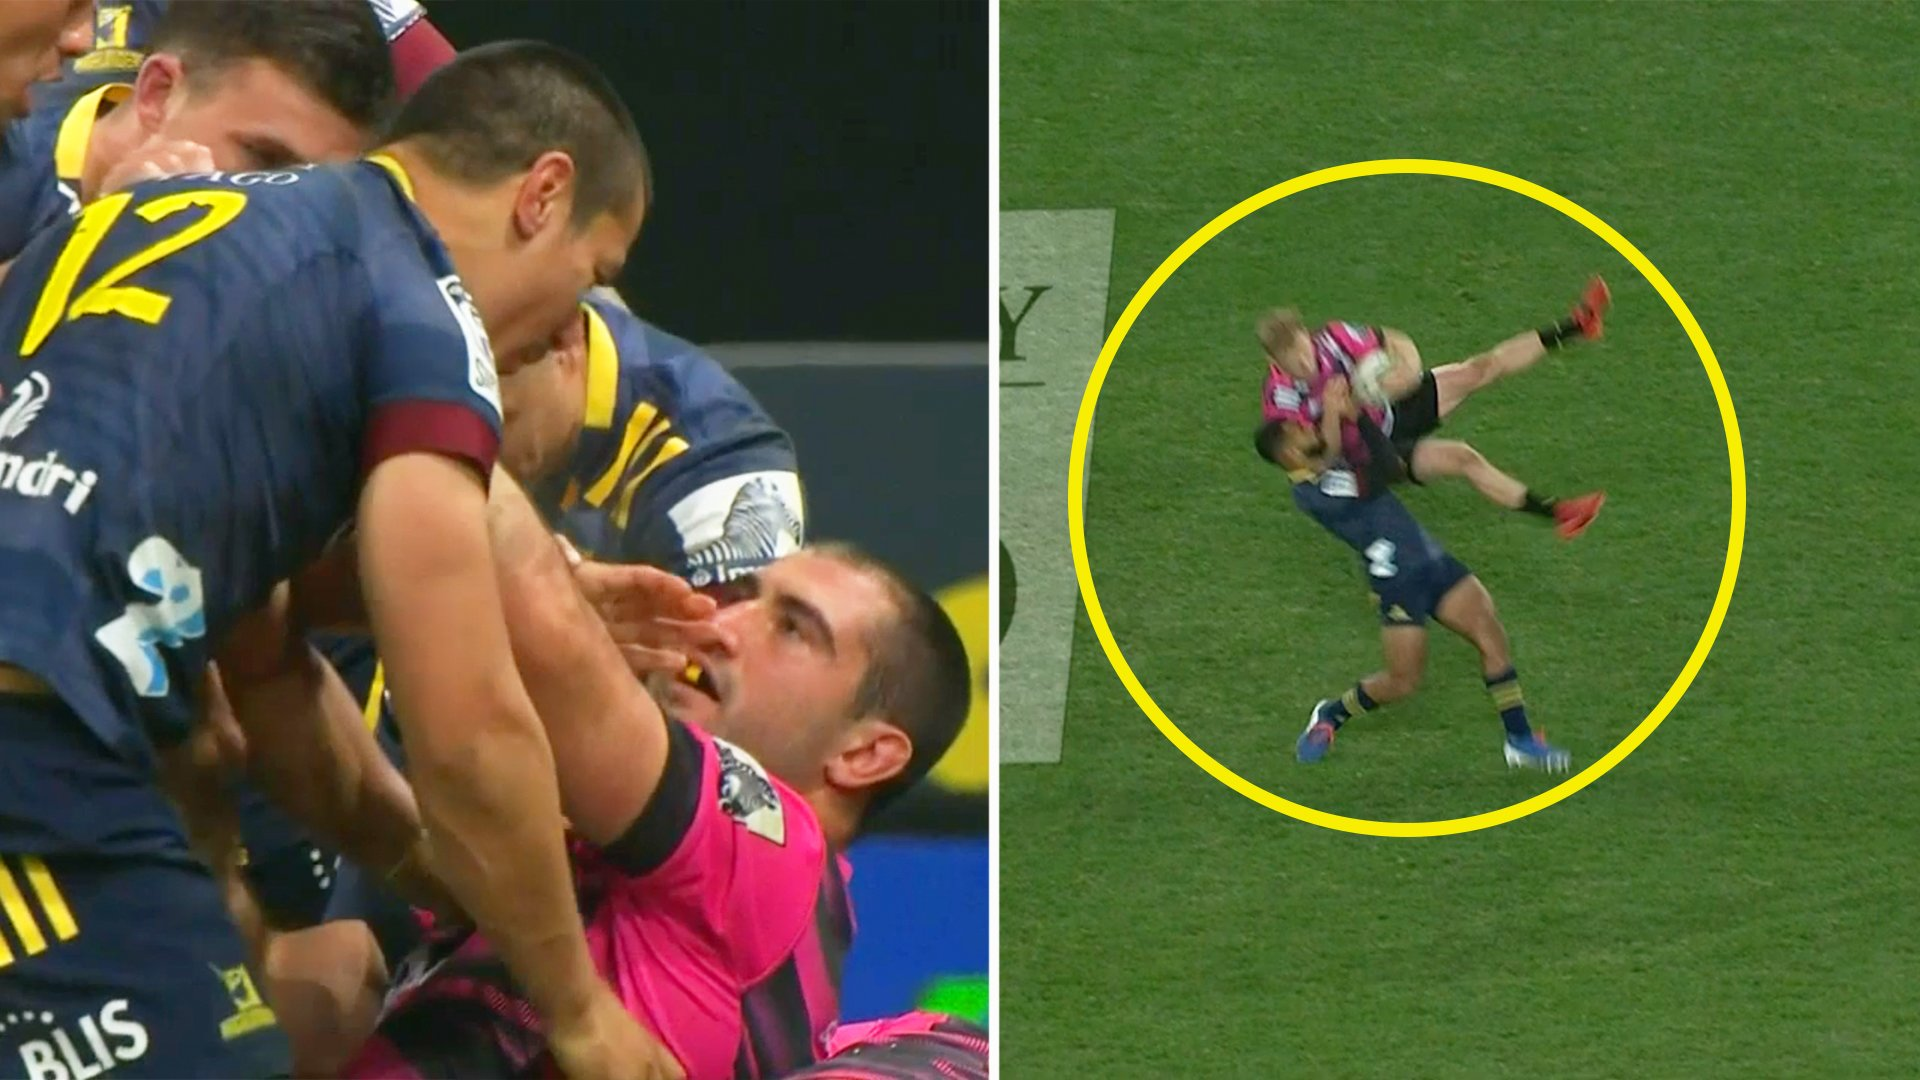 Fights and foul play in fiery Super Rugby opener